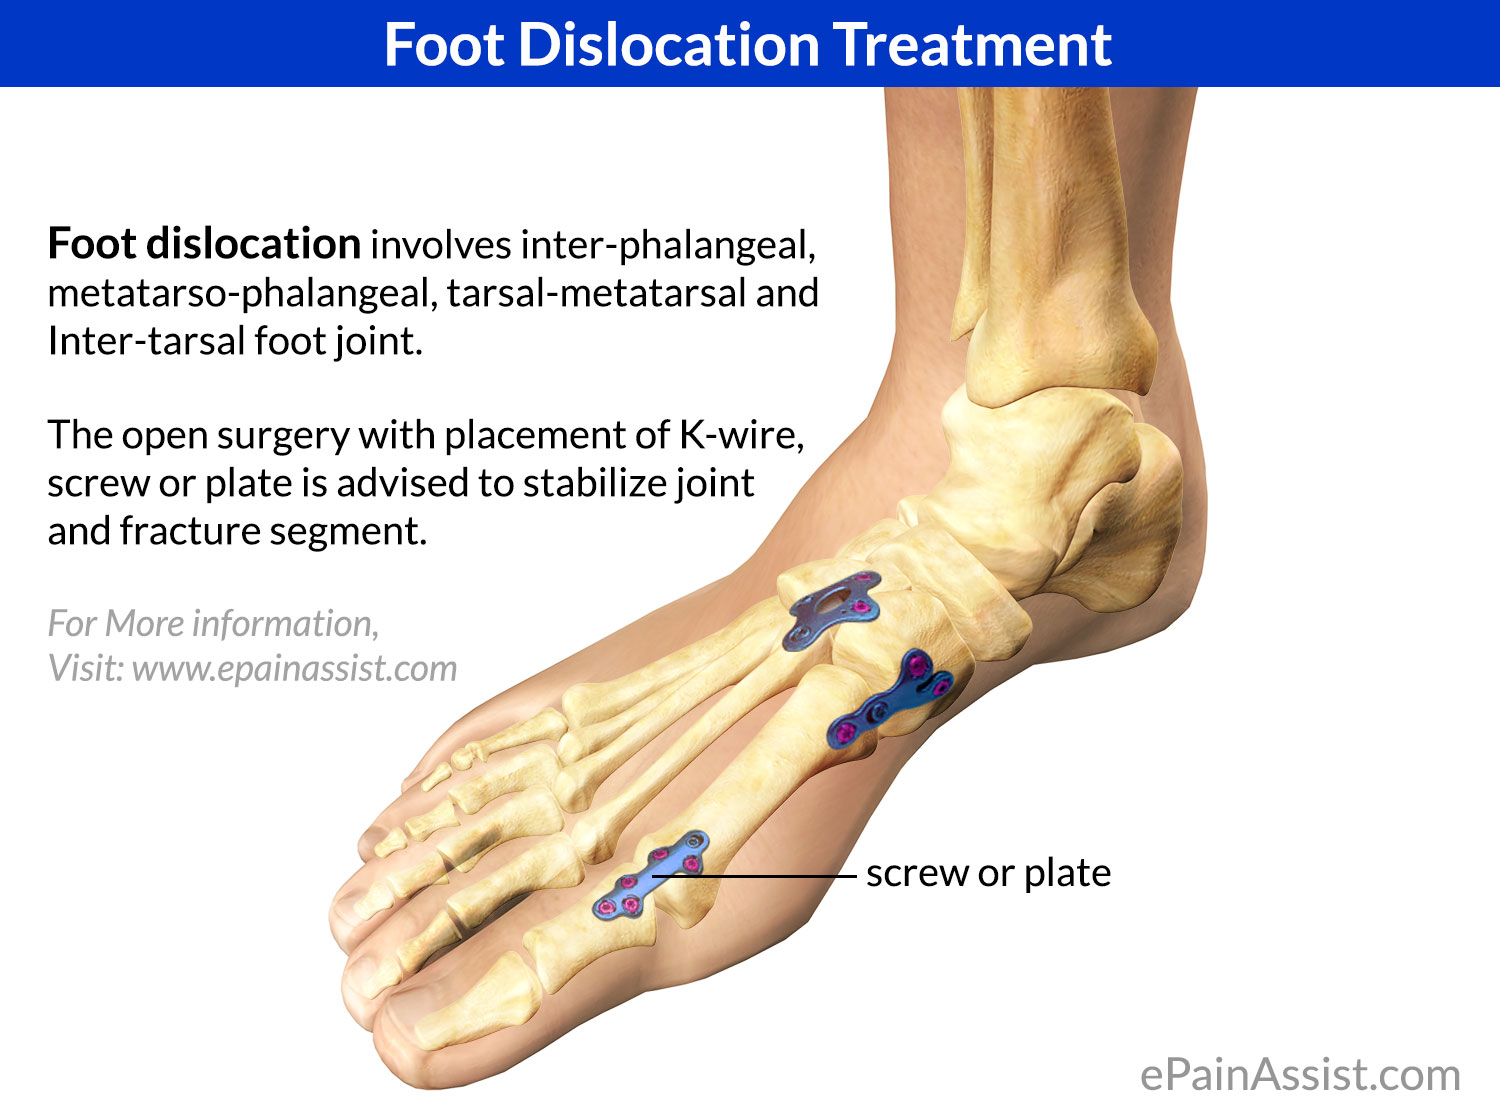 Foot Dislocation Treatment: Elective, Surgical, Post Surgical, ER